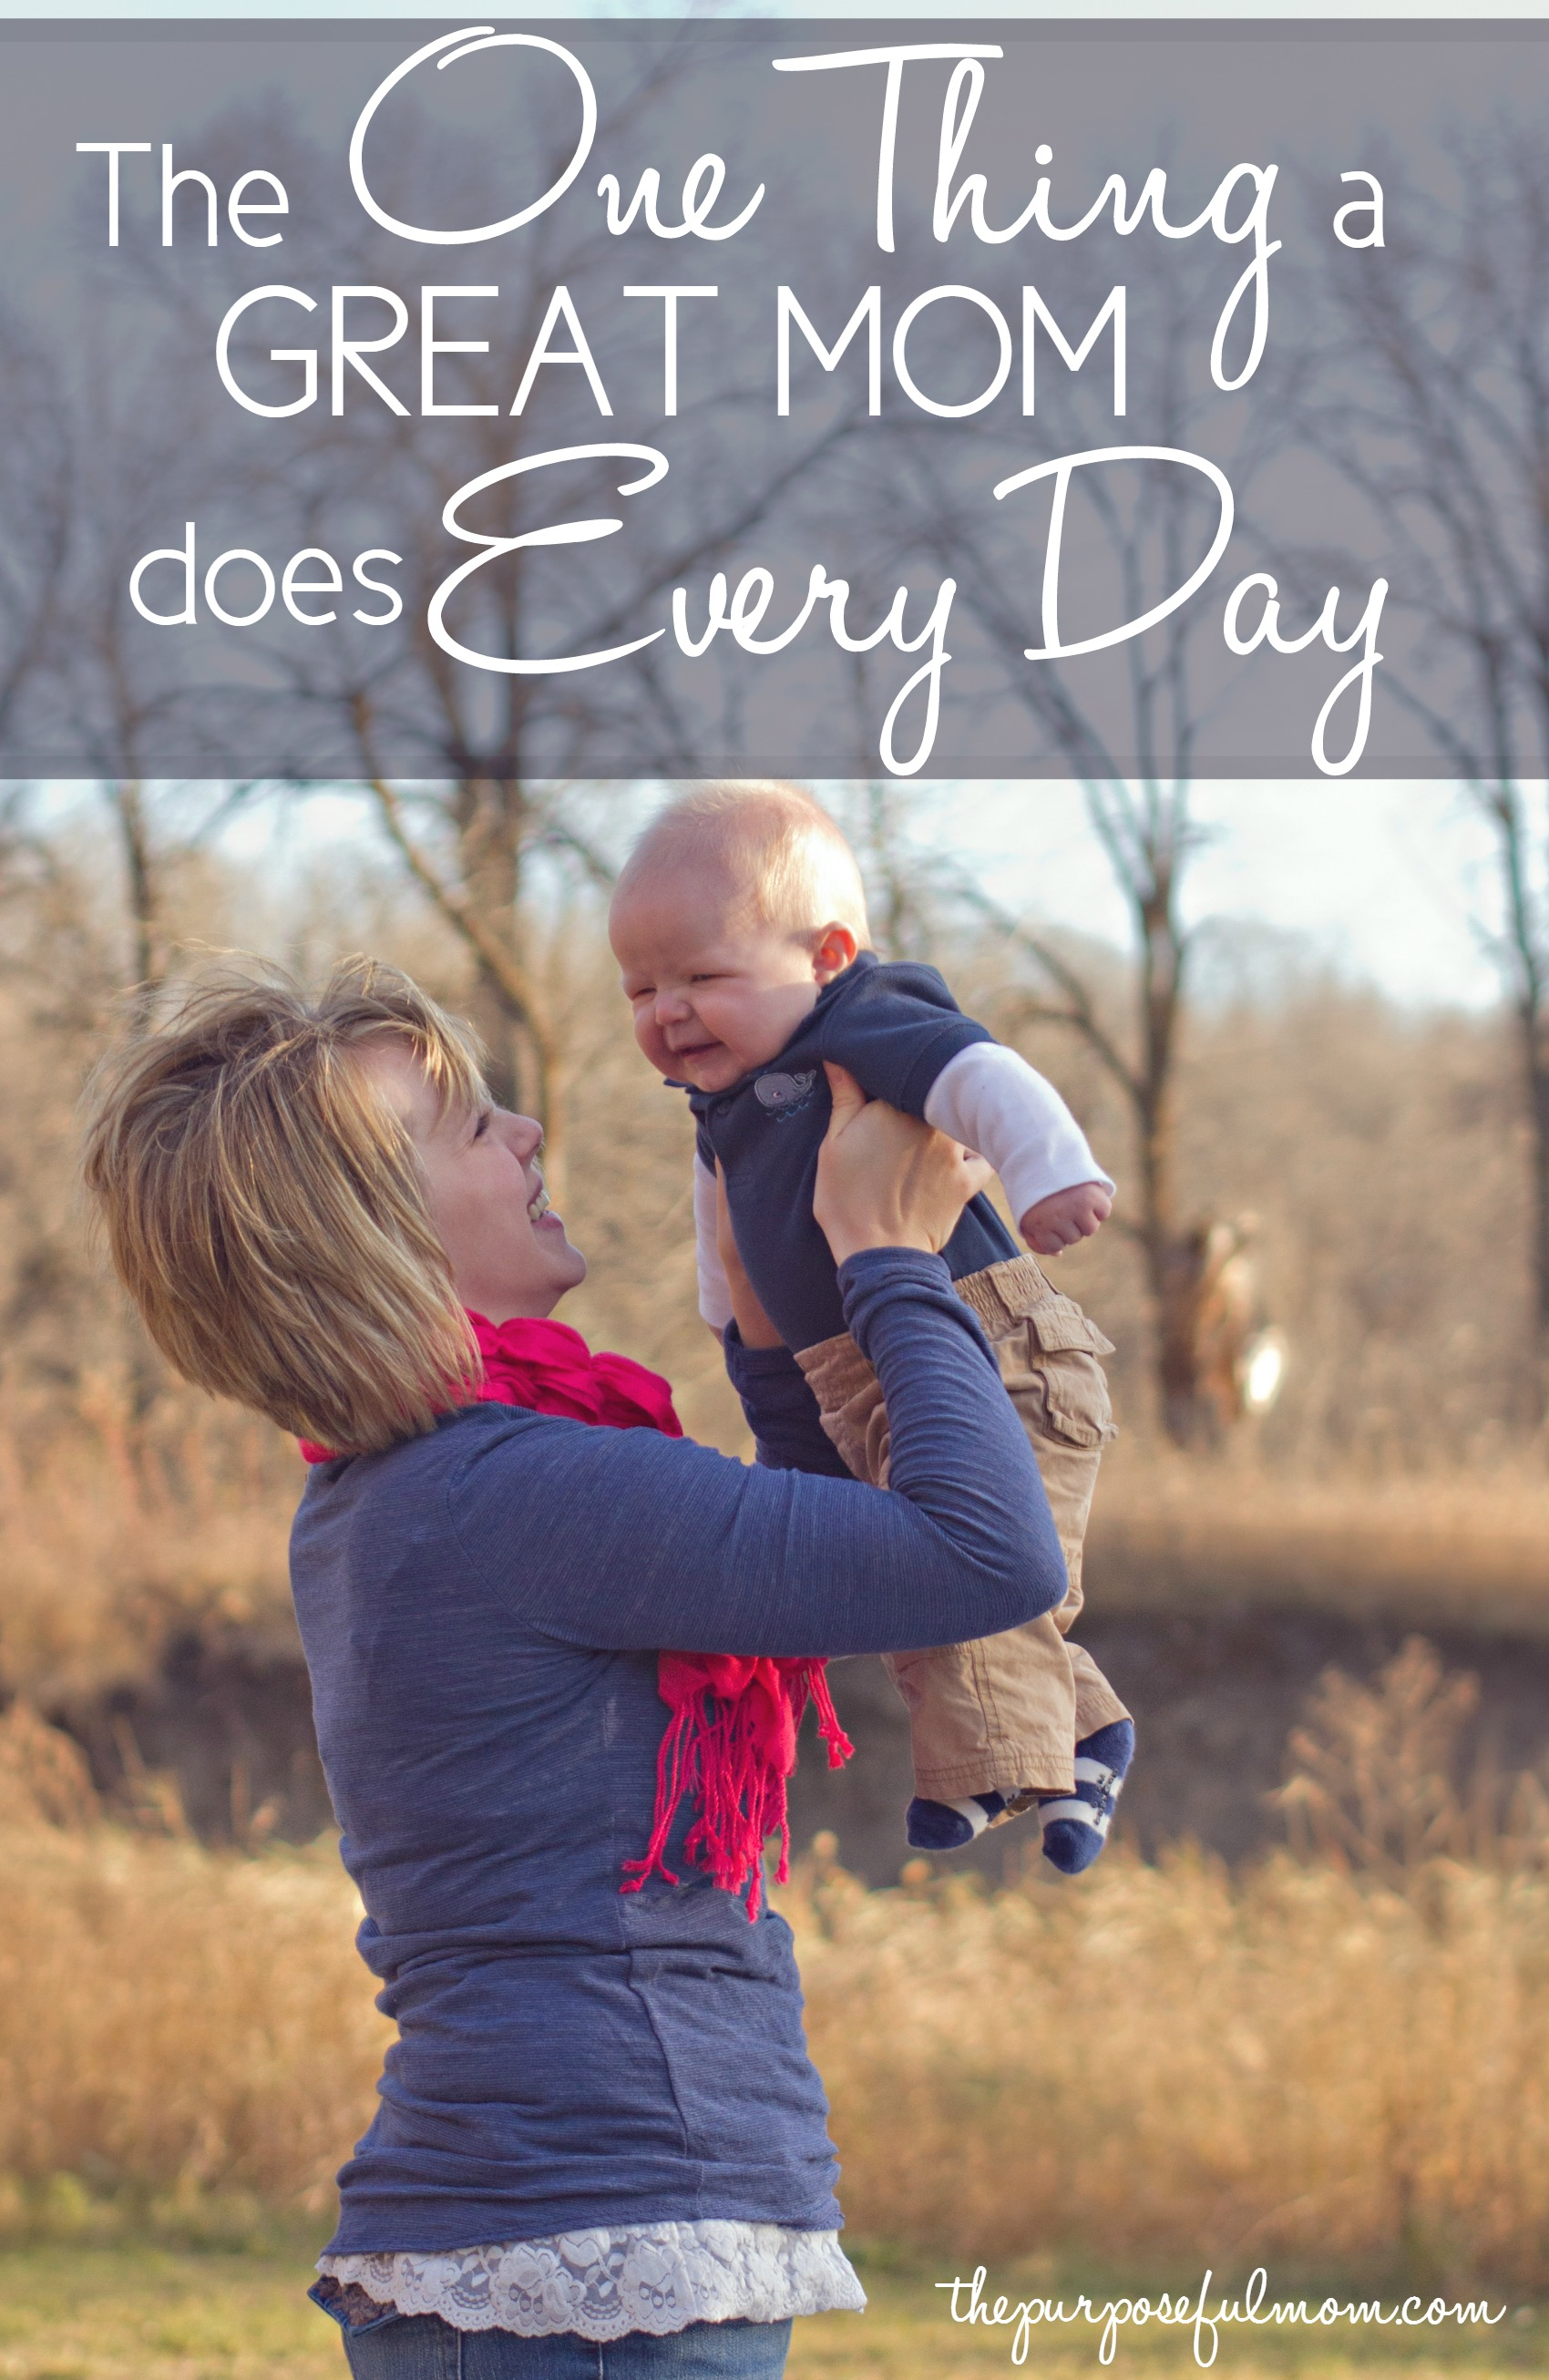 Following all the mom advice out there can be completely overwhelming and exhausting. It makes me want to just throw in the towel sometimes, because I can't do it all? But the good news? There is one thing a great mom does every day--it might surprise you!